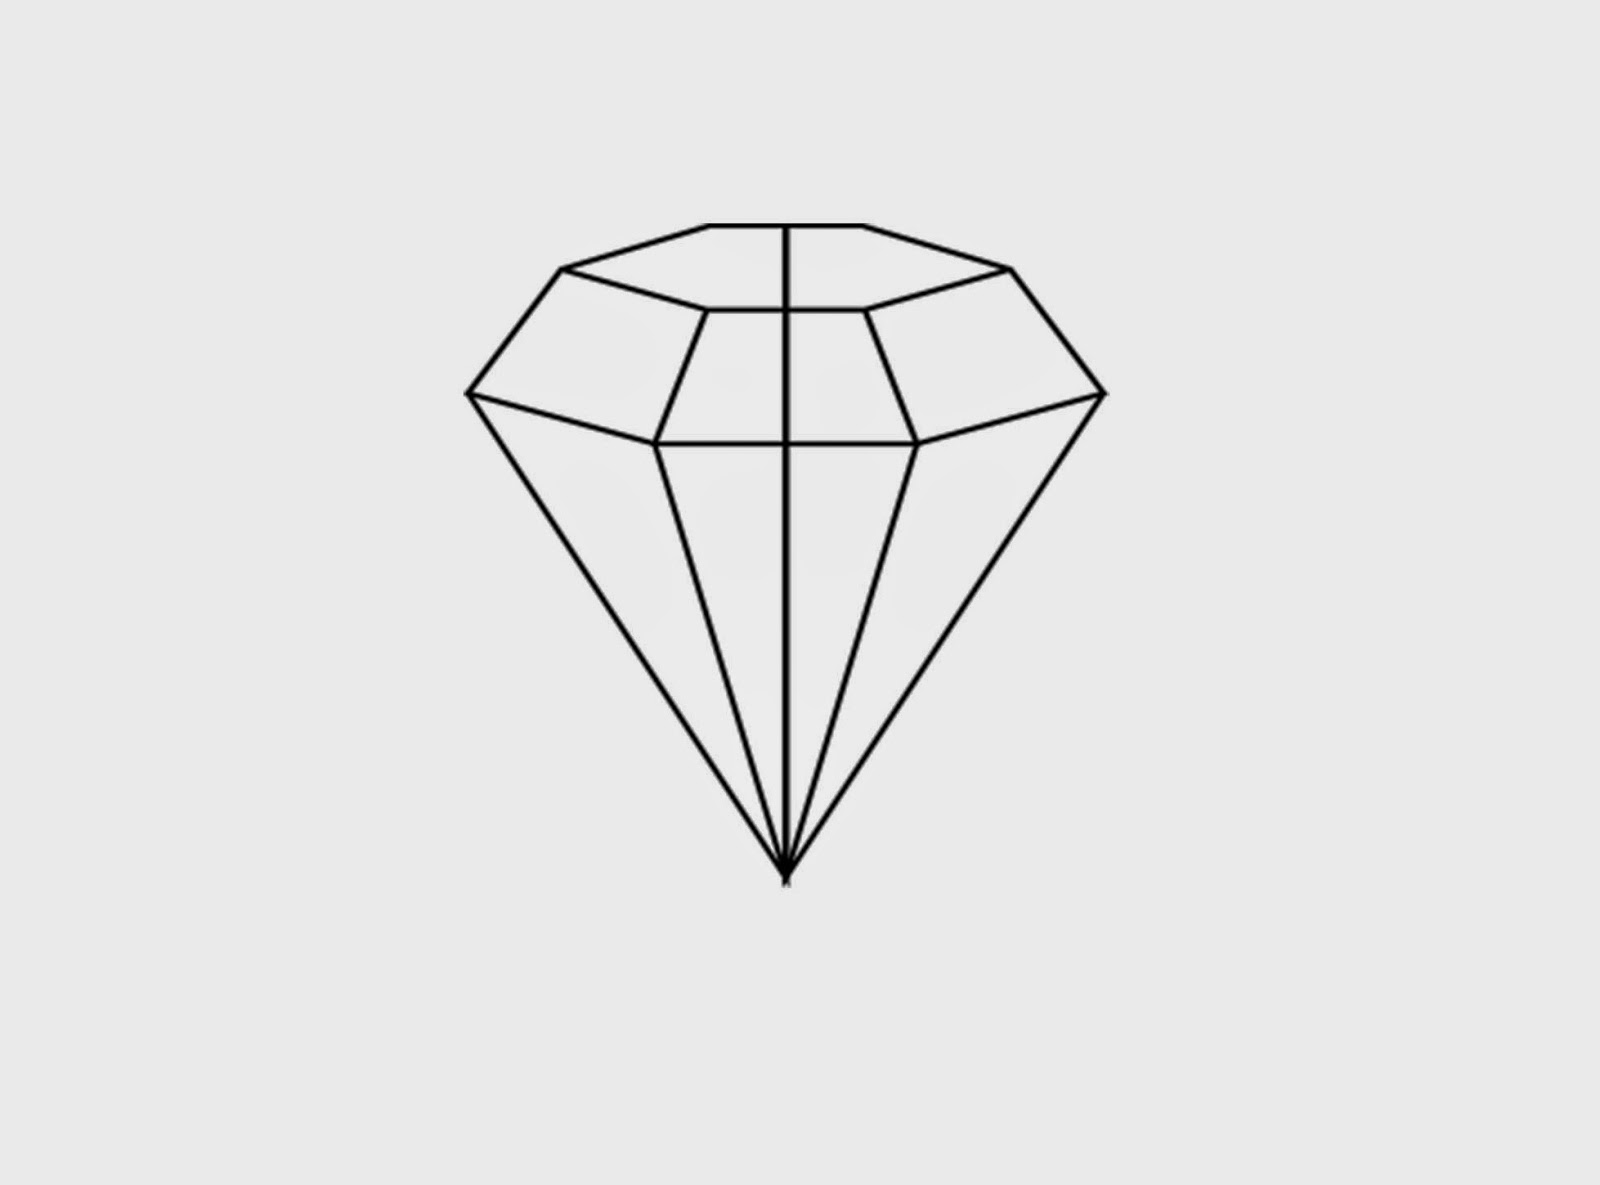 This is a photo of Playful Diamond Shape Drawing